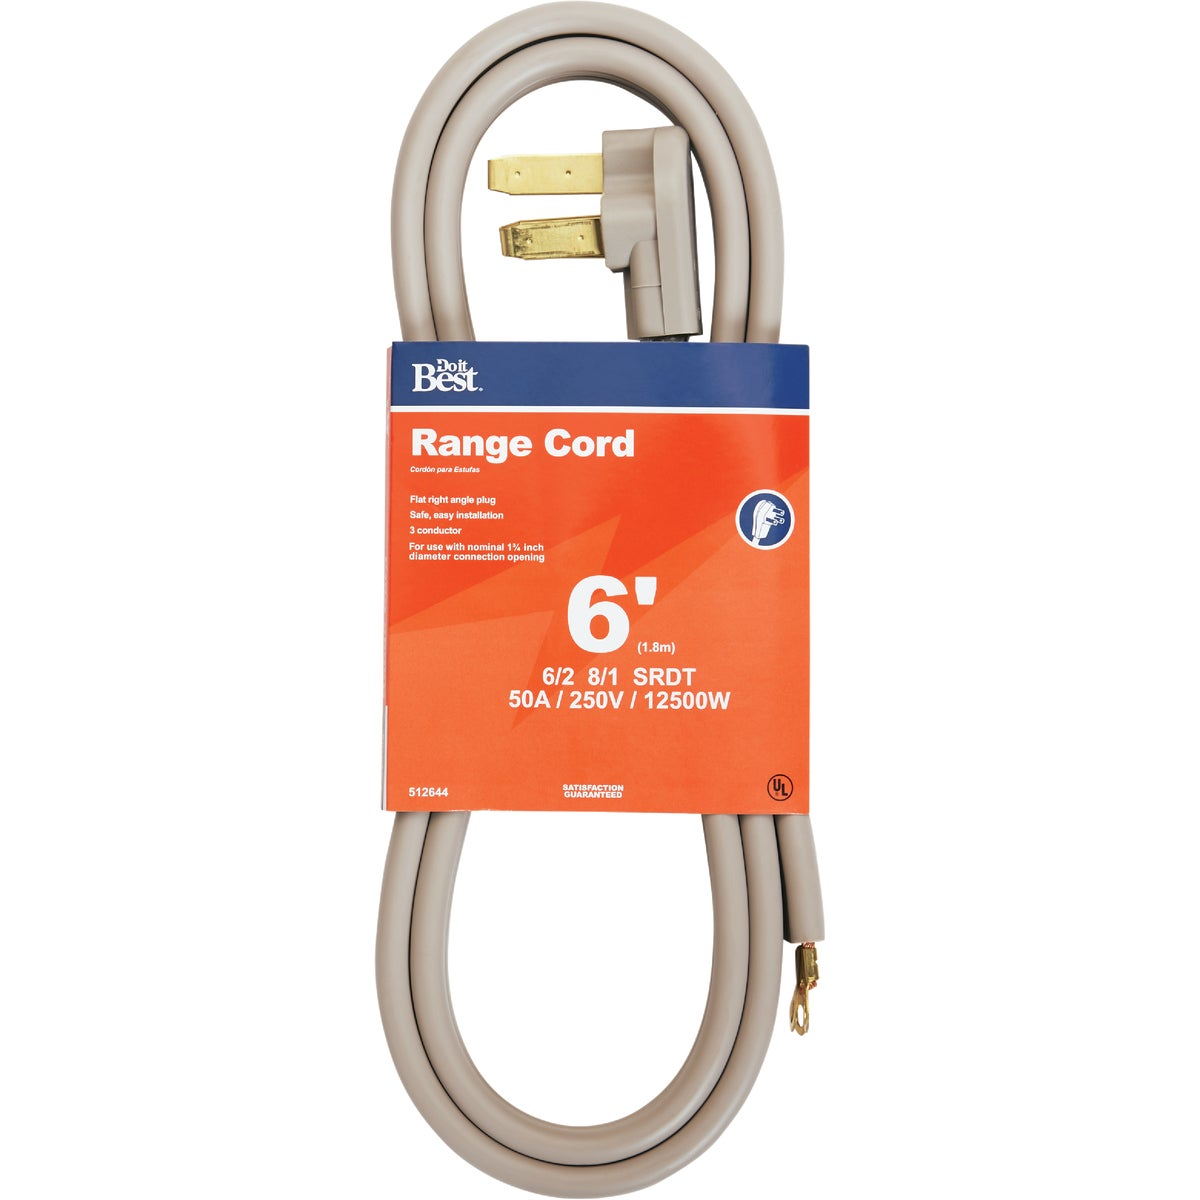 6' 50A RANGE CORD - 550986 by Coleman Cable Hwg